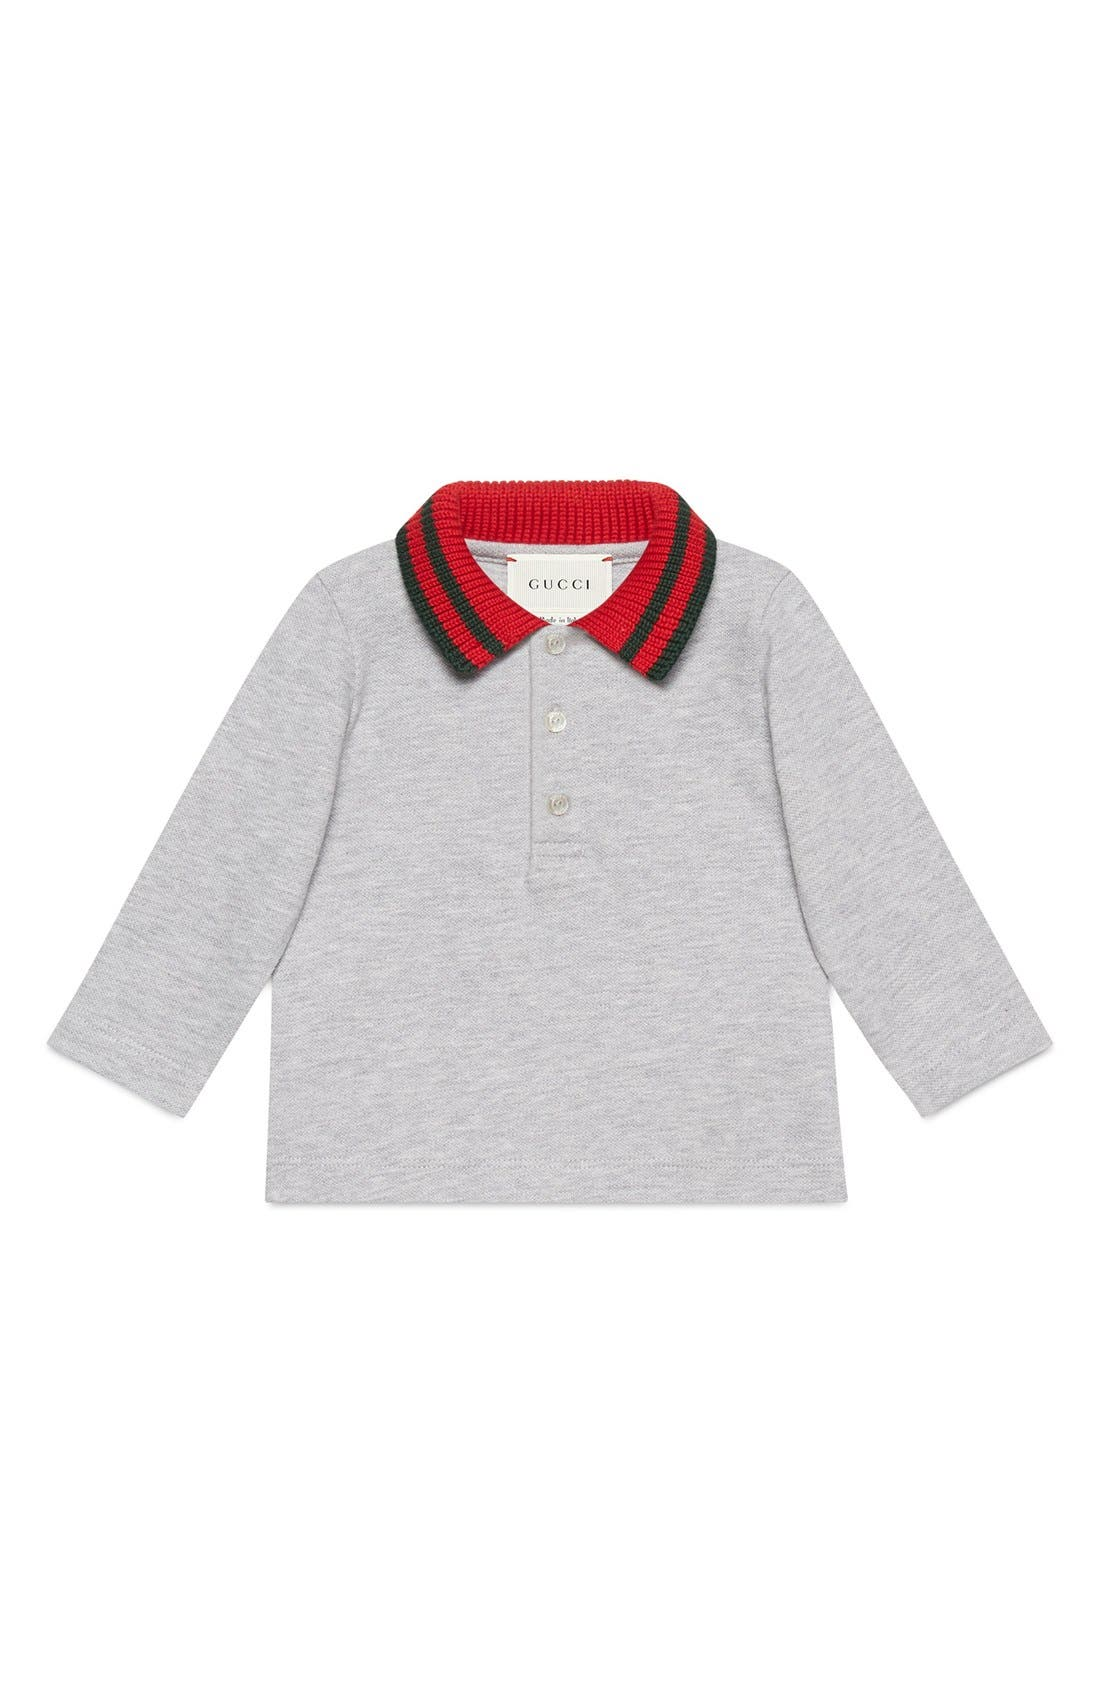 Alternate Image 1 Selected - Gucci Stripe Collar Long Sleeve Polo (Baby Boys & Toddler Boys)